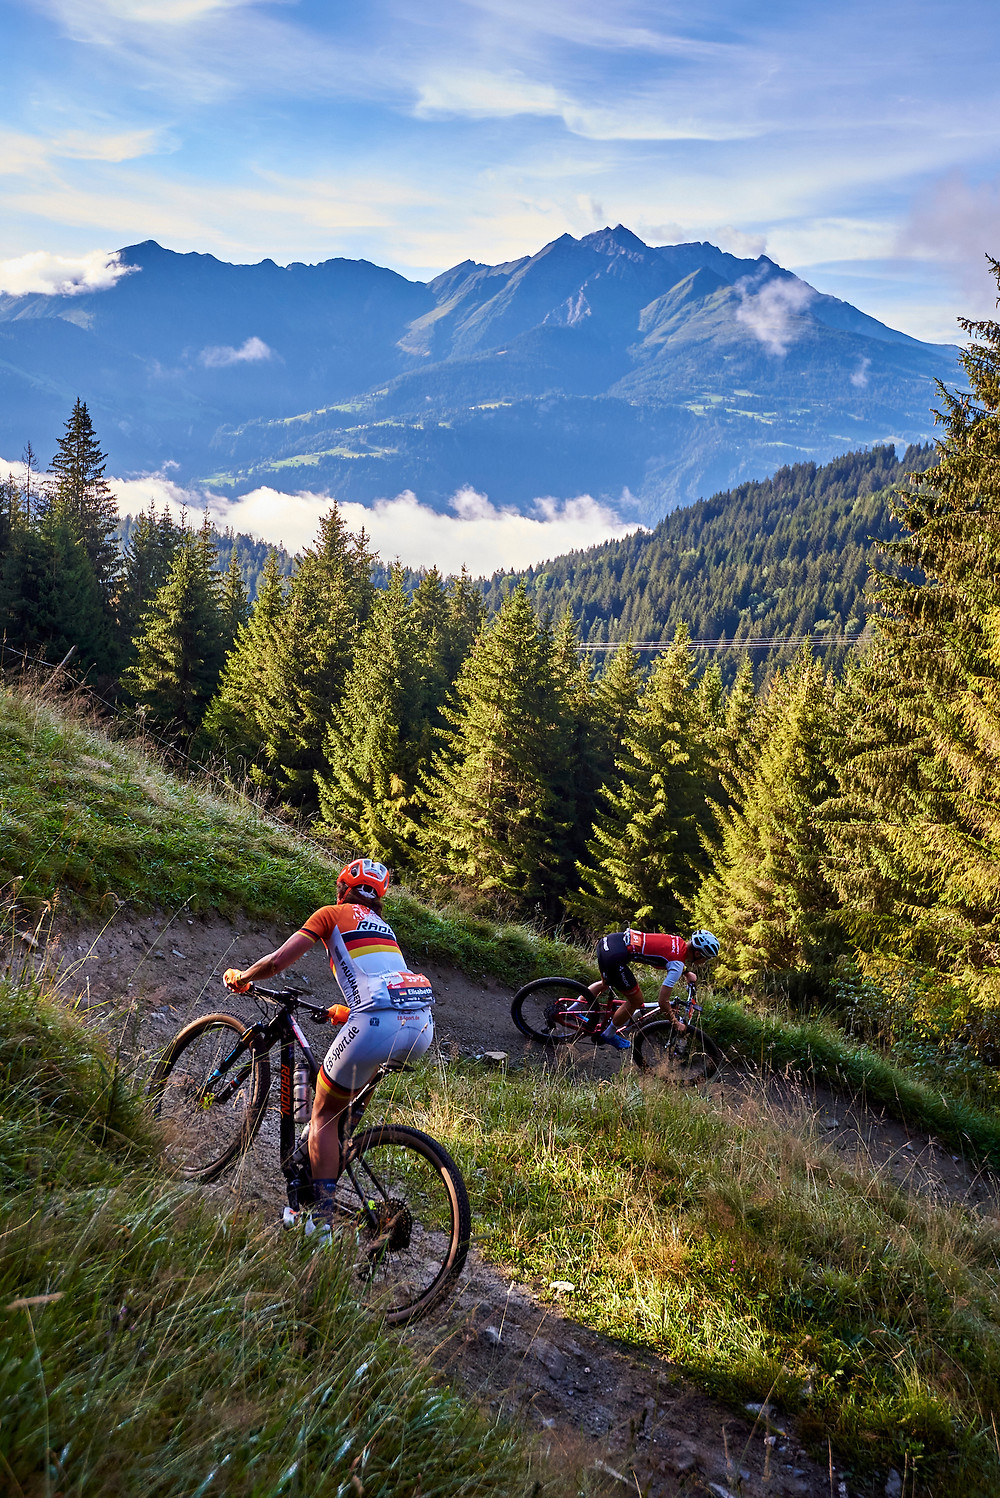 Elisabeth BRANDAU,Stefanie DOHRN during Stage 2 of the 2020 Swiss Epic from Laax to Arosa, Graubünden, Switzerland on 19 August 2020. Photo by Marius Holler.